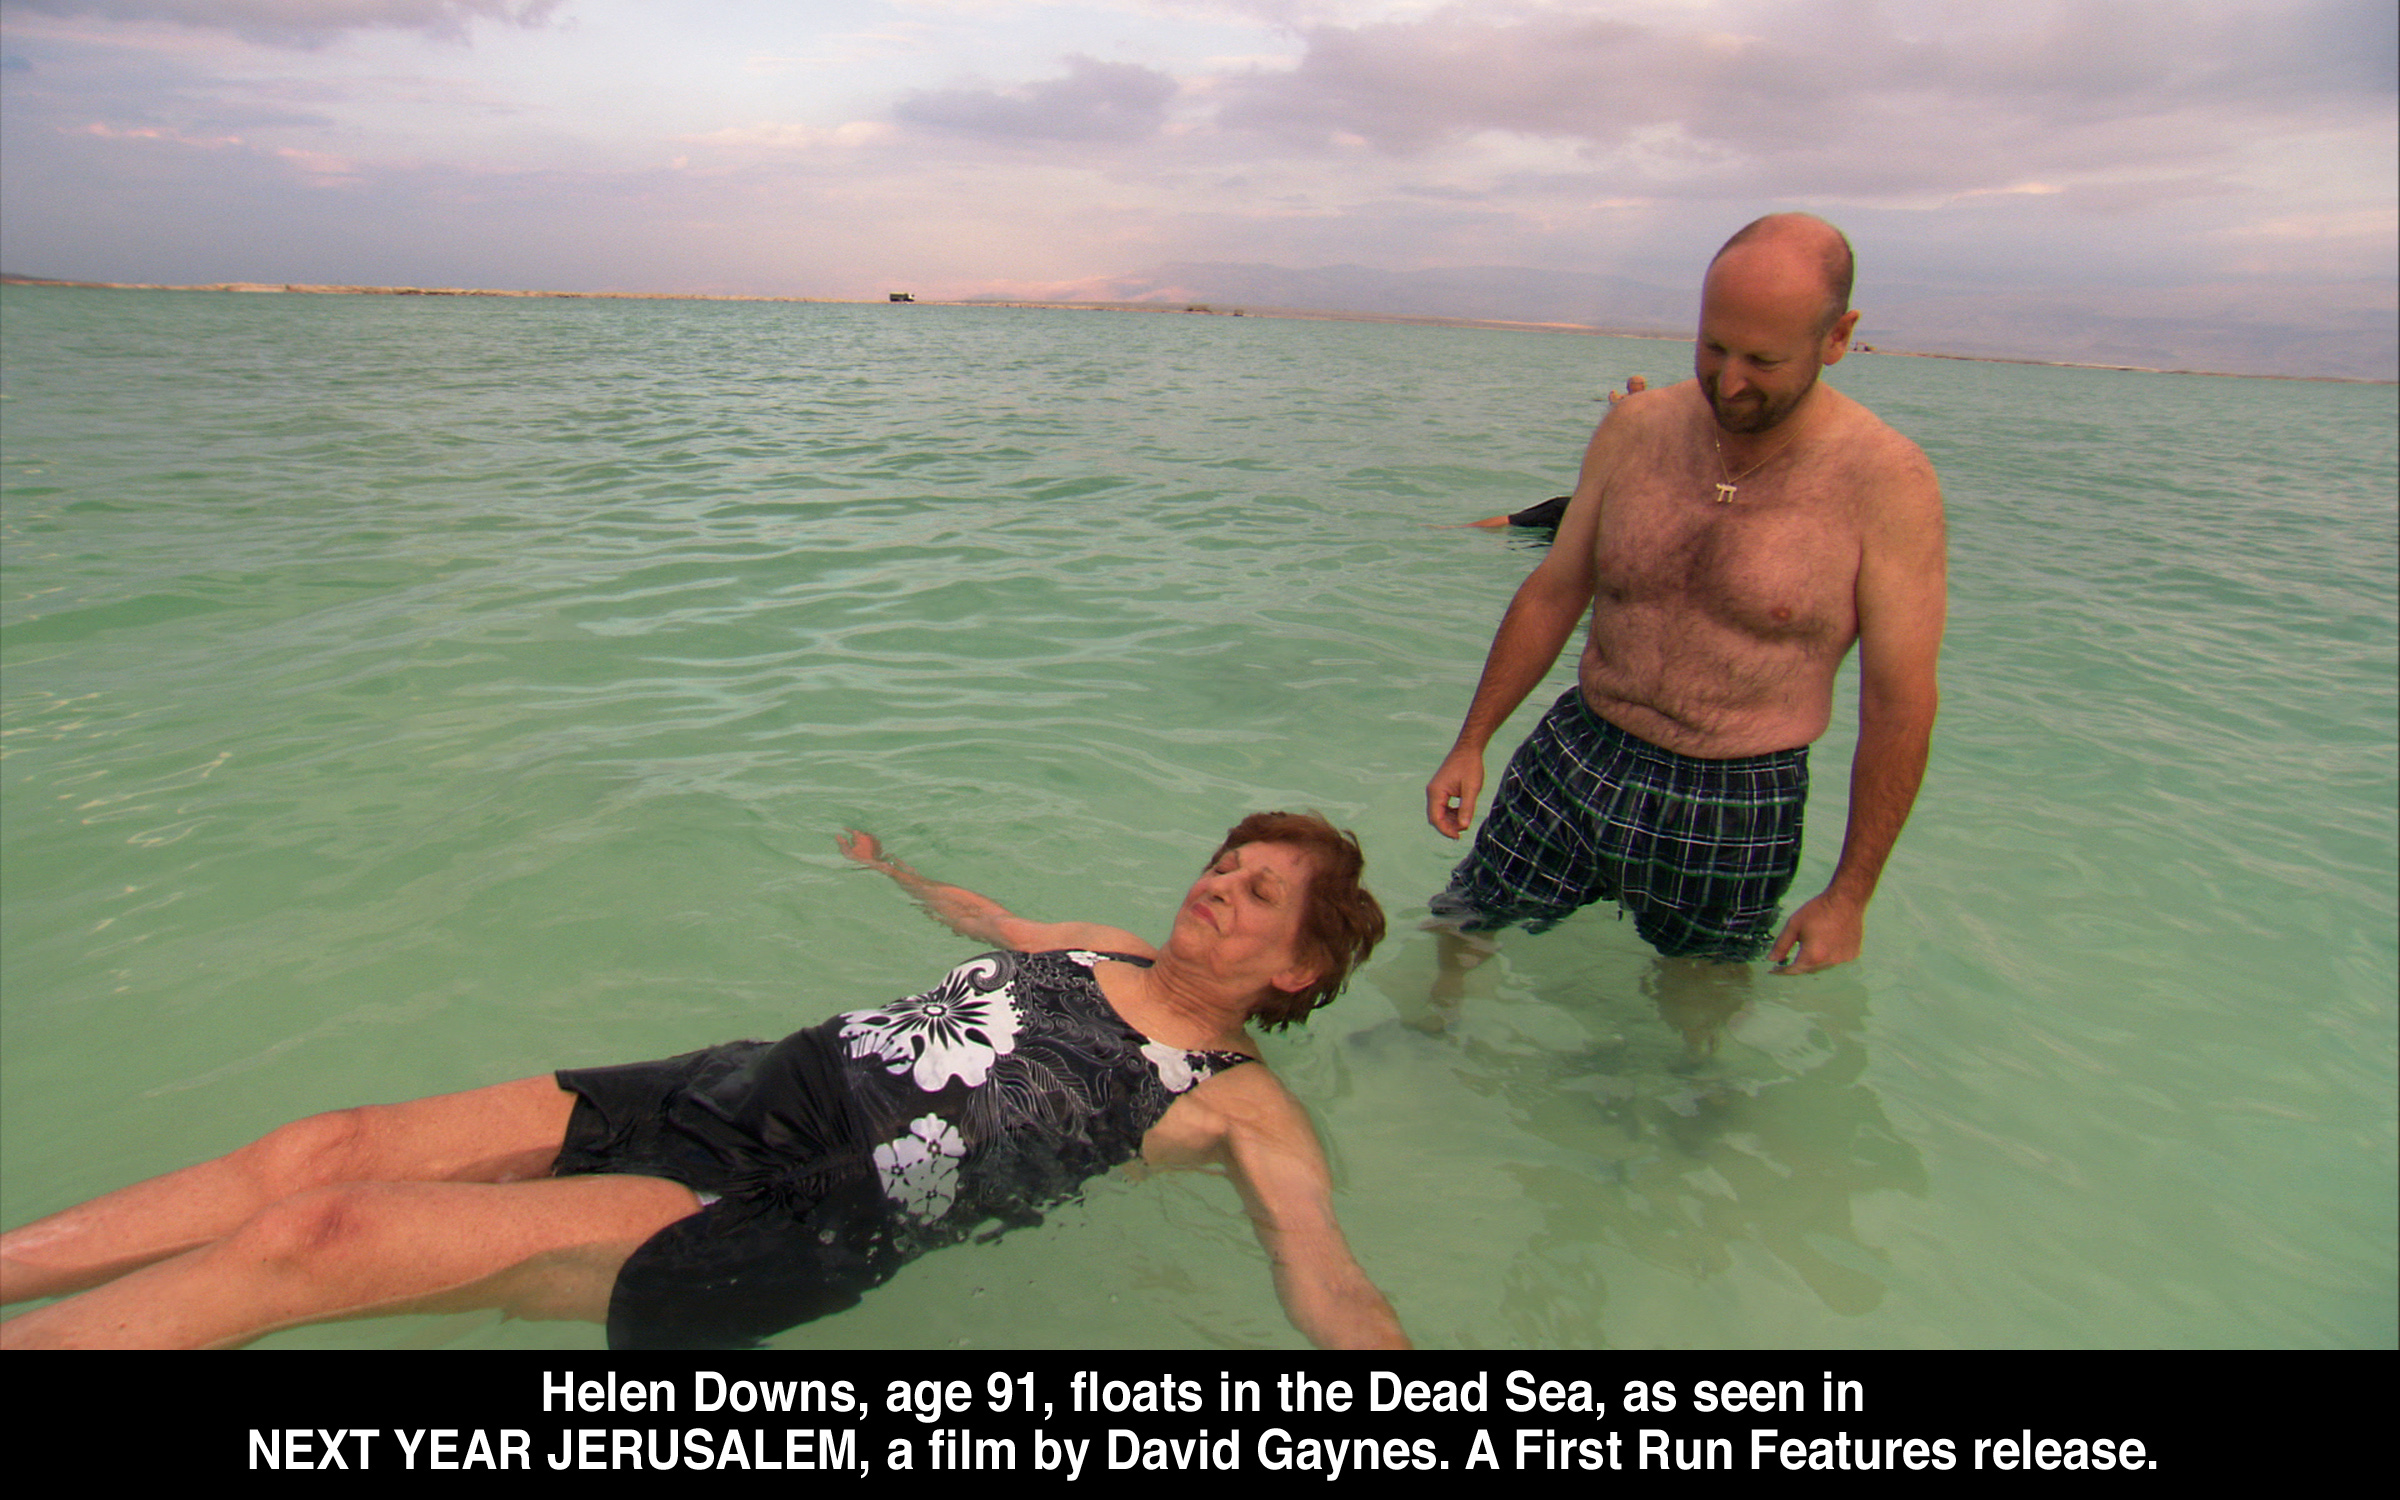 Helen Downs (91) floats in the Dead Sea, as seen in Next Year Jerusalem, a film by   David Gaynes.